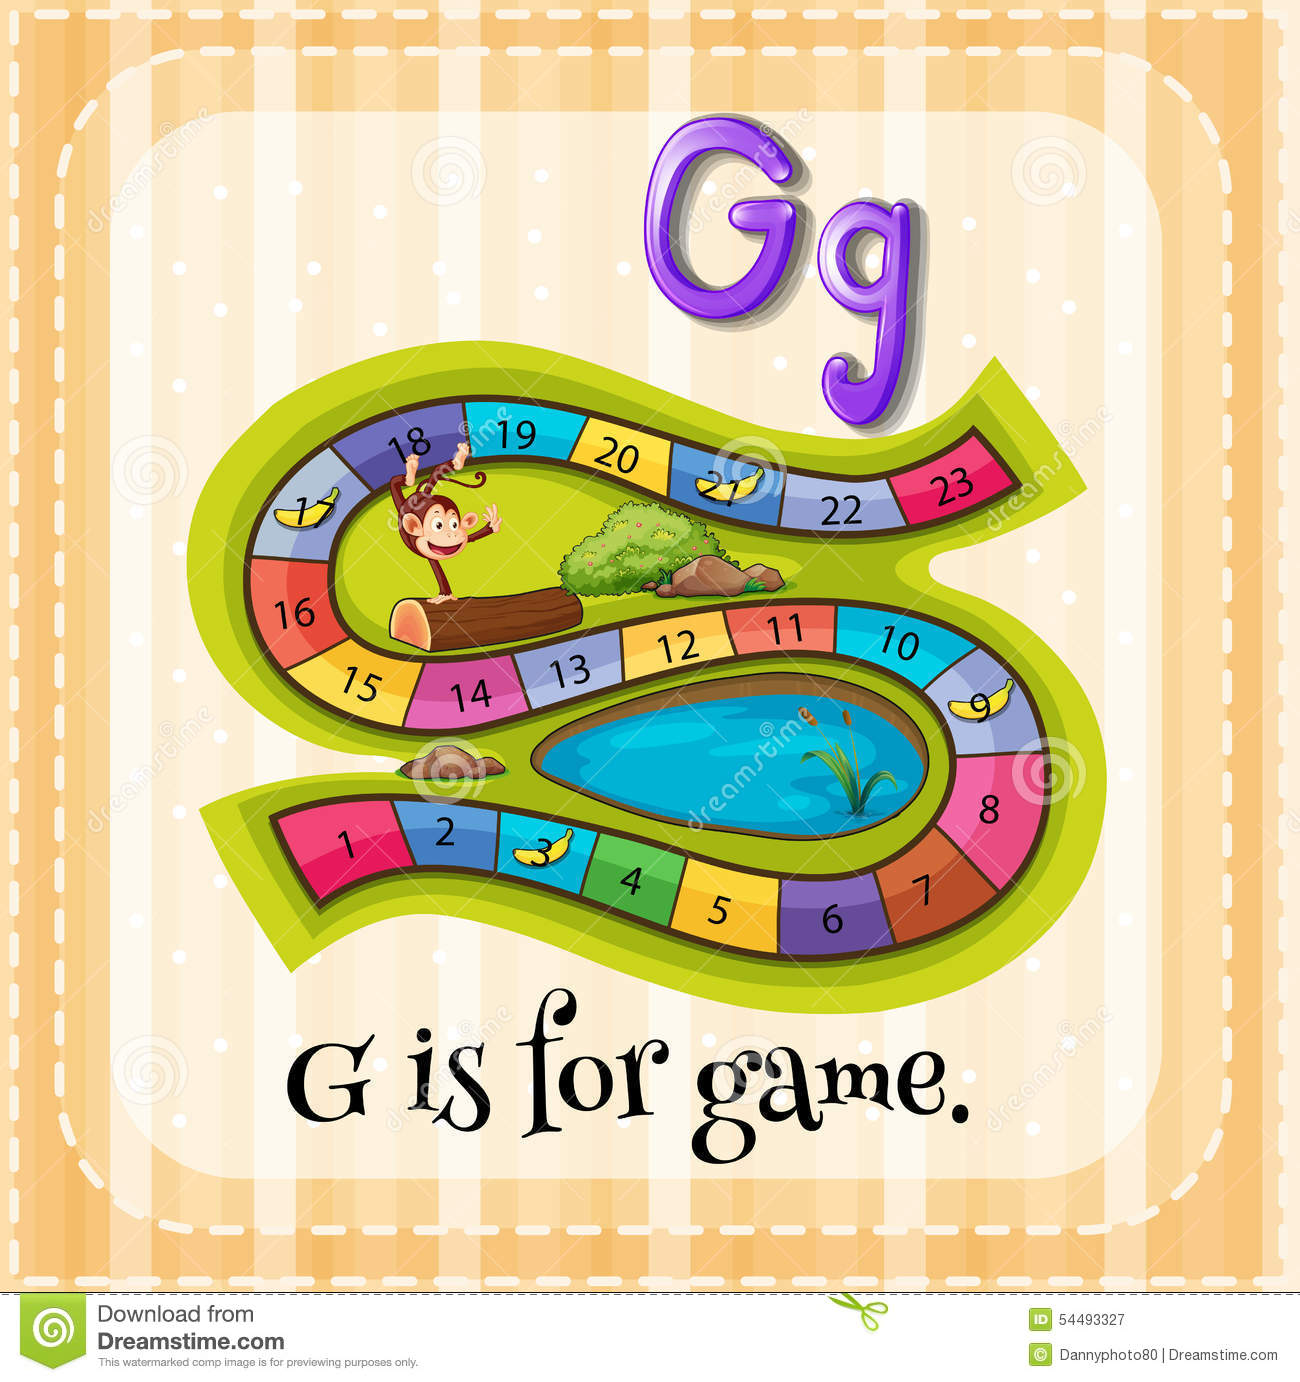 Letter G Stock Illustration - Image: 54493327: dreamstime.com/stock-illustration-letter-g-flashcard-game...